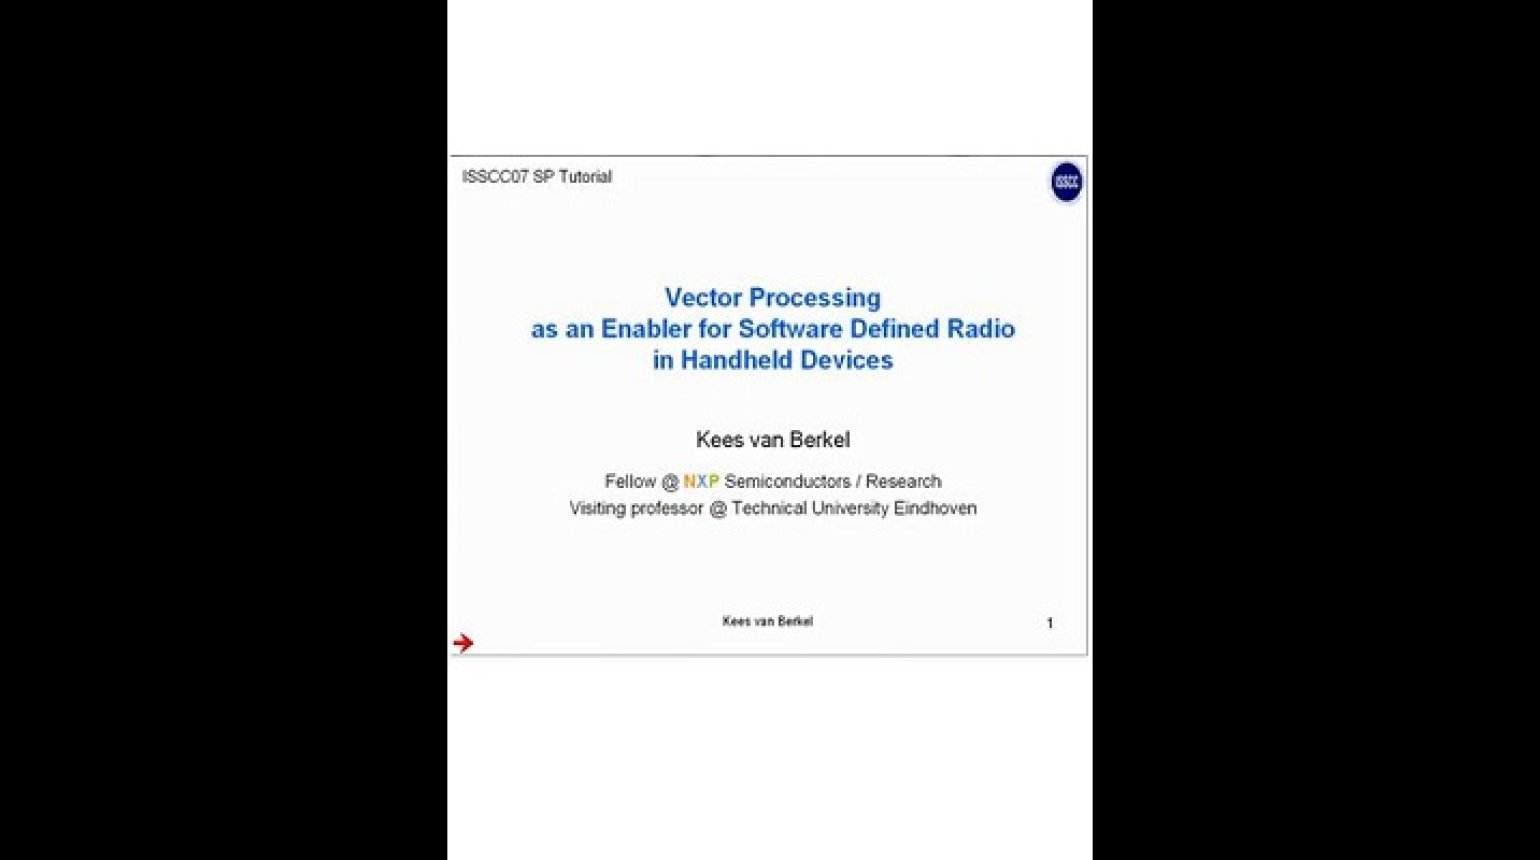 Vector Processing as an Enabler for Sotware Defined Radio in Handheld Devices Video